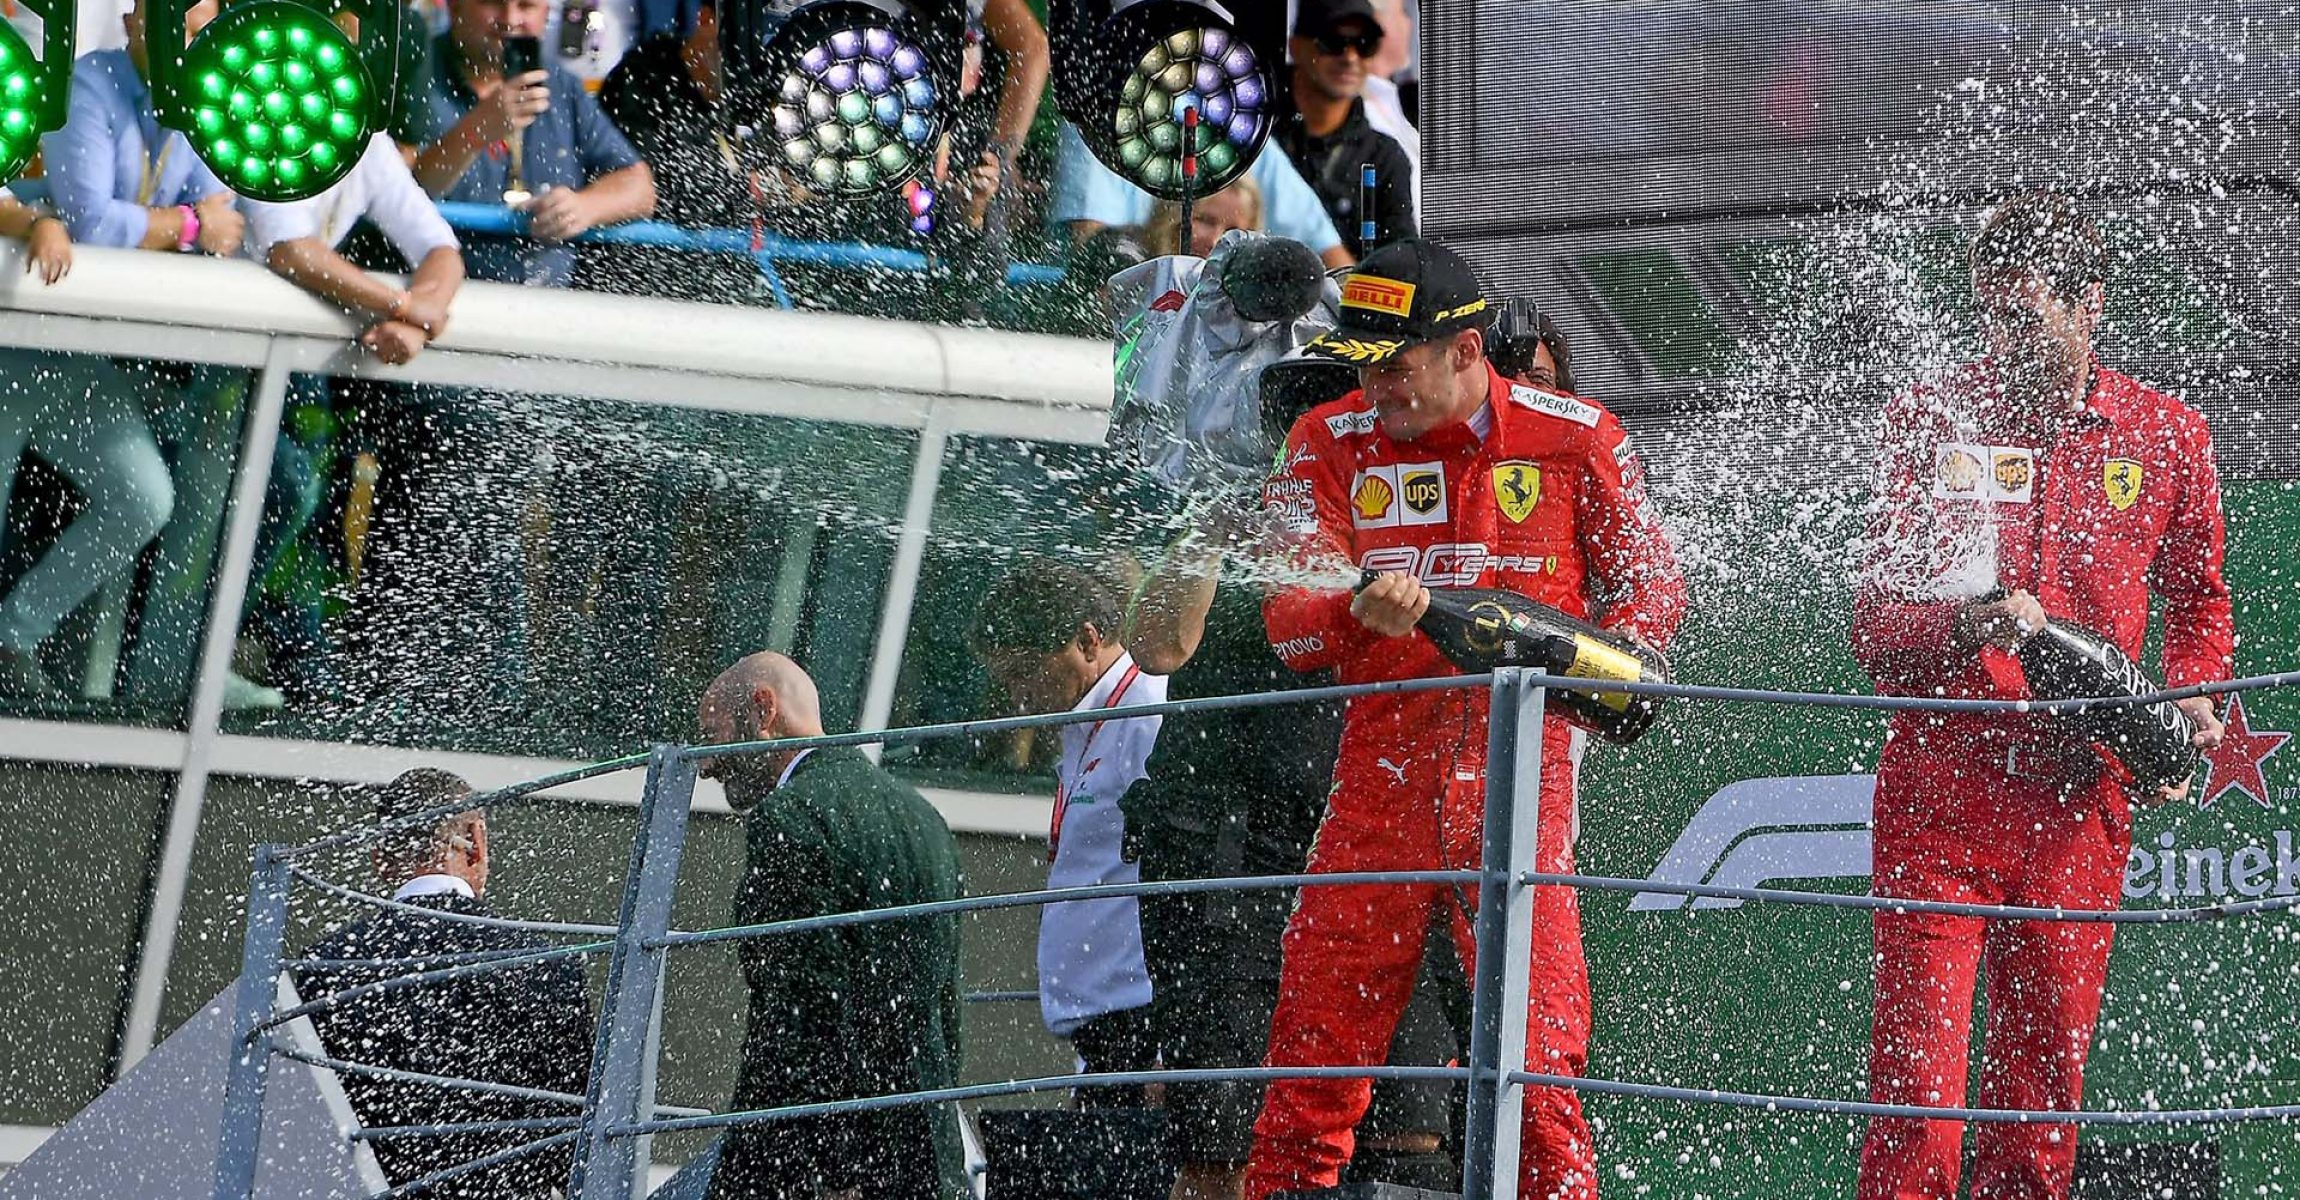 GP ITALIA F1/2019 - DOMENICA 08/09/2019 credit: @Scuderia Ferrari Press Office Charles Leclerc Ferrari